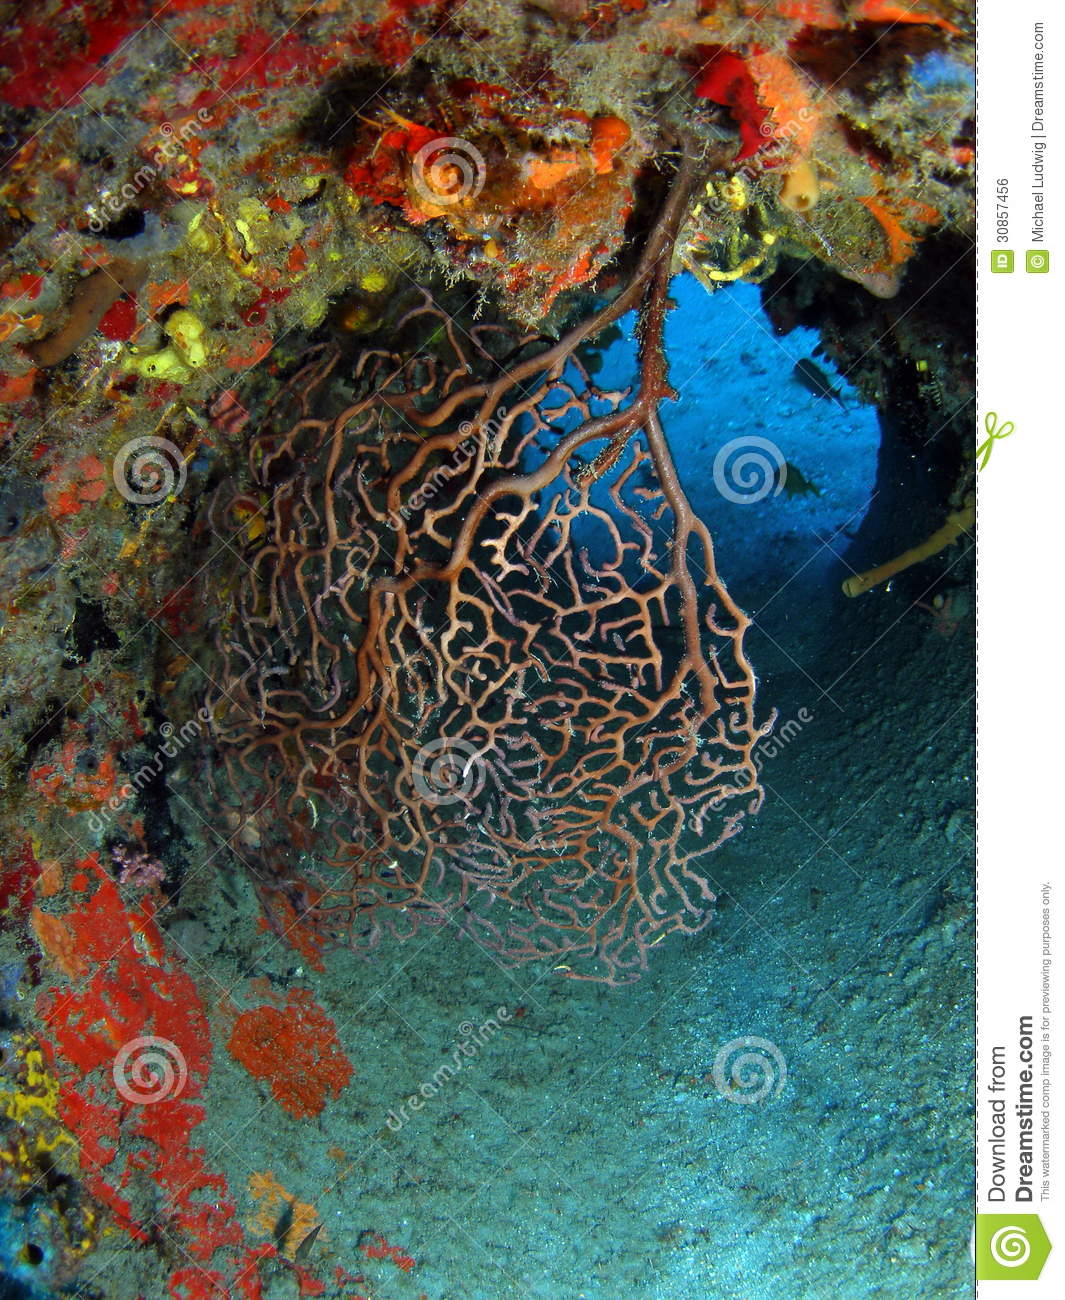 Florida Reefs And Wrecks Map.Coral Reef On Wreck Stock Photo Image Of Florida Saltwater 30857456